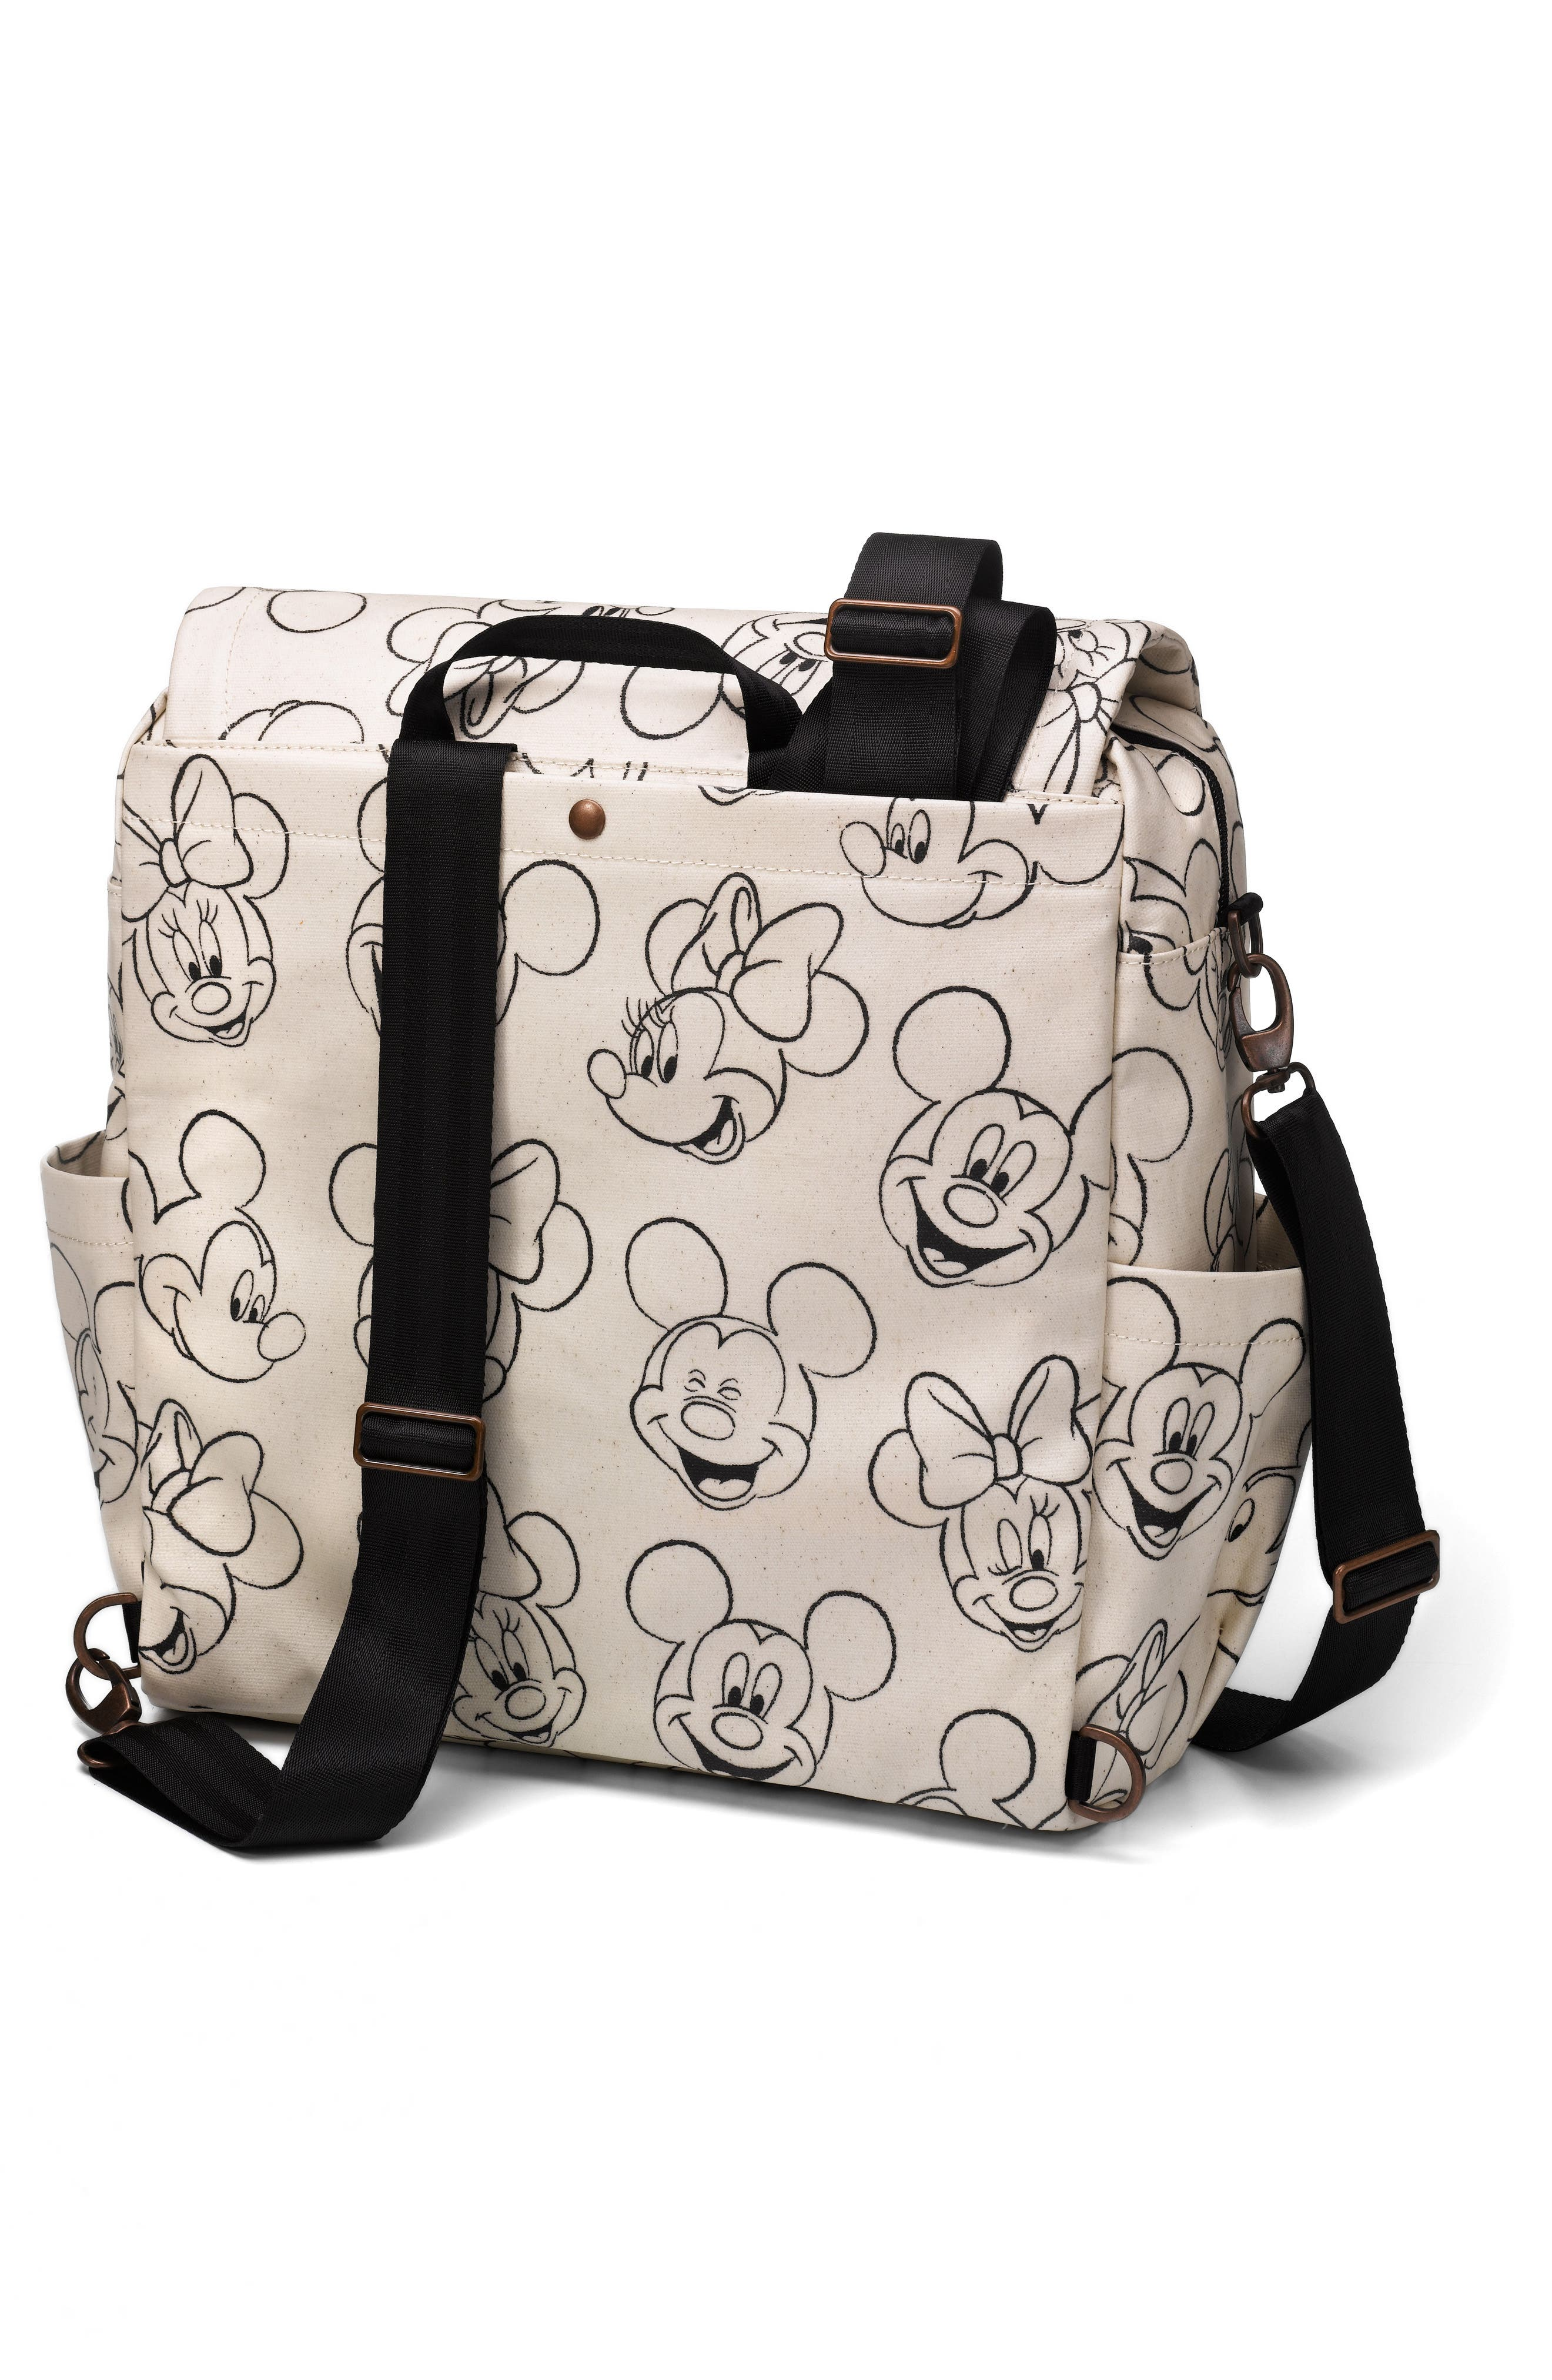 Boxy Backpack - Disney Diaper Bag,                             Alternate thumbnail 2, color,                             SKETCHBOOK MICKEY AND MINNIE